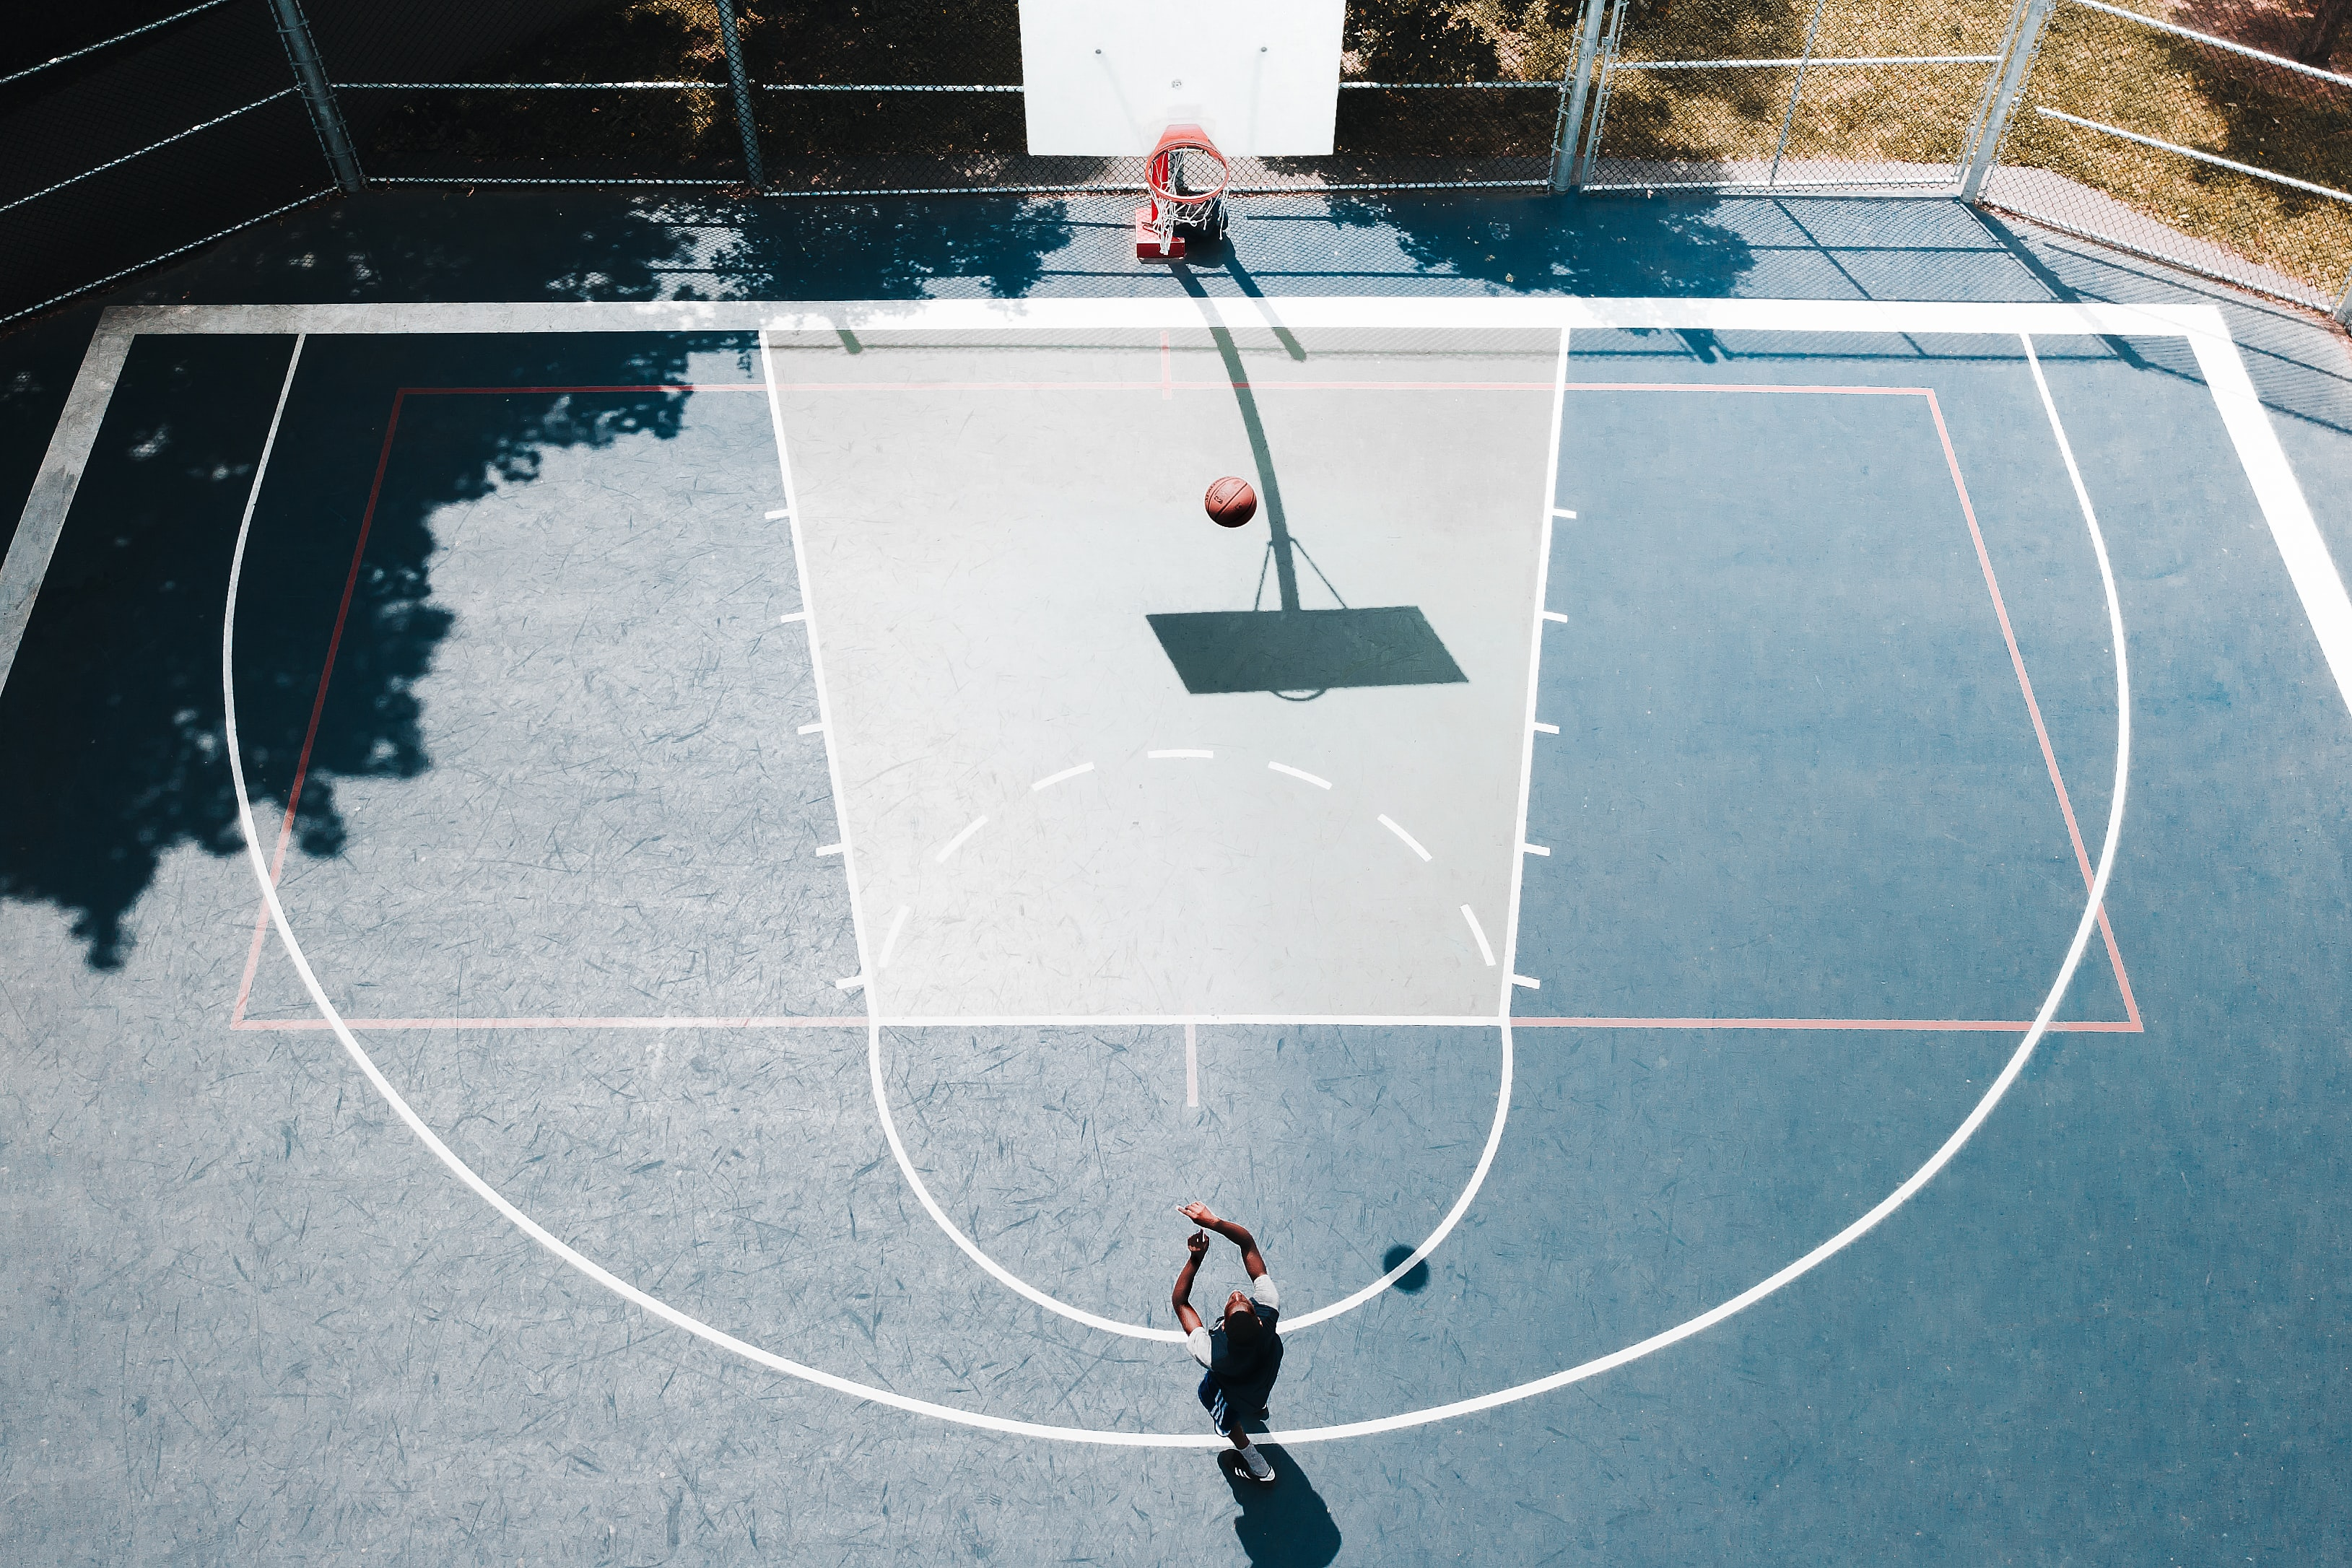 Drone view of person shooting basketball into hoop on a court outdoors